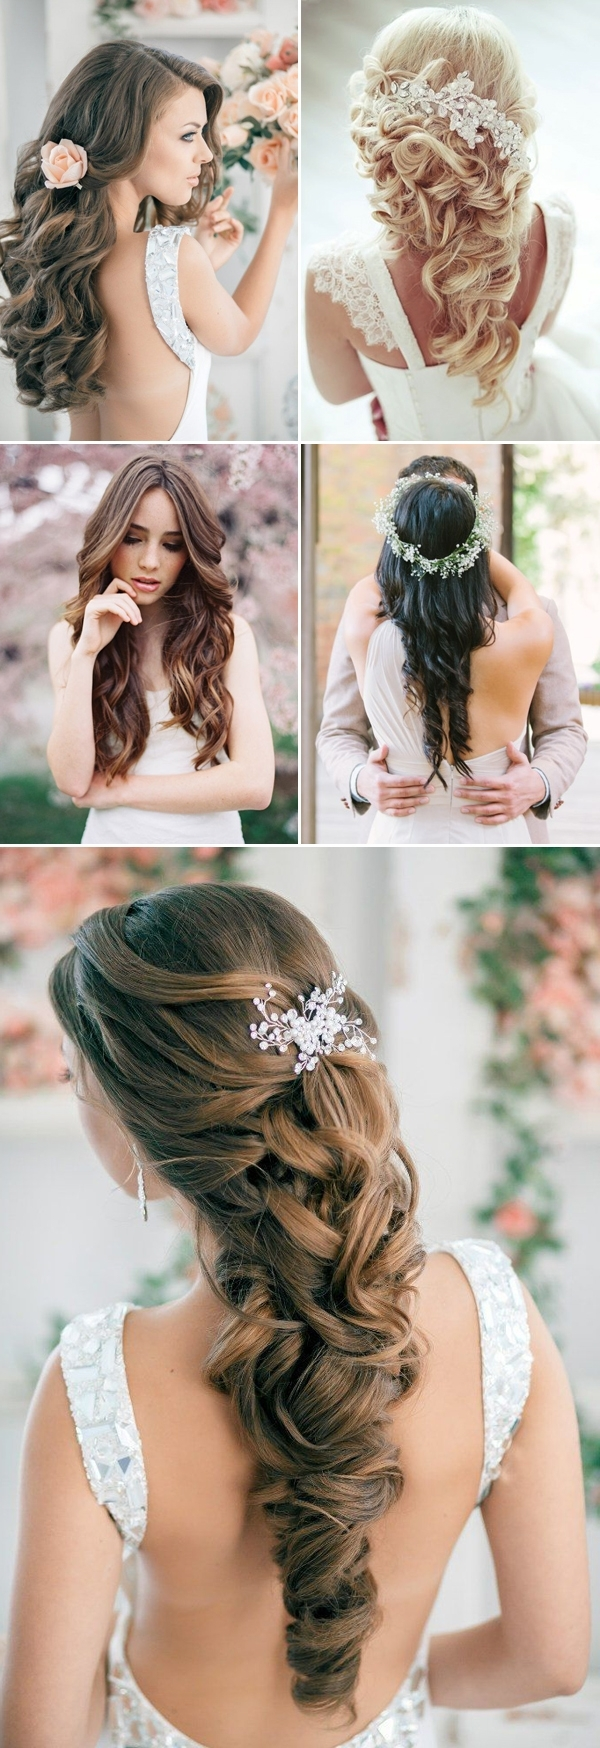 Trendy Wedding Hairstyles For Long Hair Down With Flowers For 42 Steal Worthy Wedding Hairstyles For Long Hair (View 10 of 15)